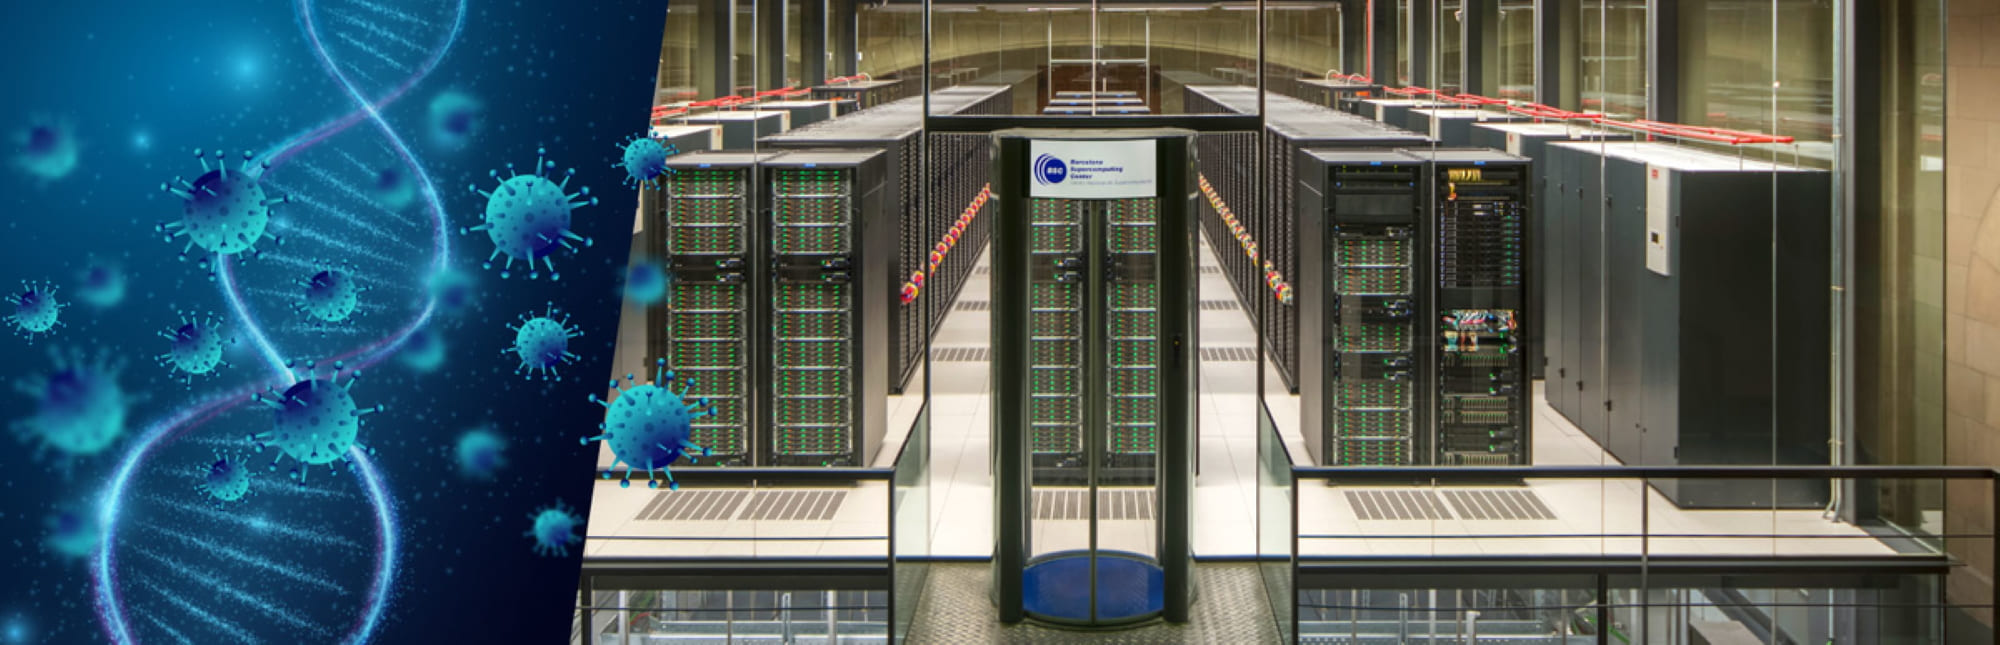 El supercomputador Marenostrum, ubicado en el Barcelona Supercomputing Center